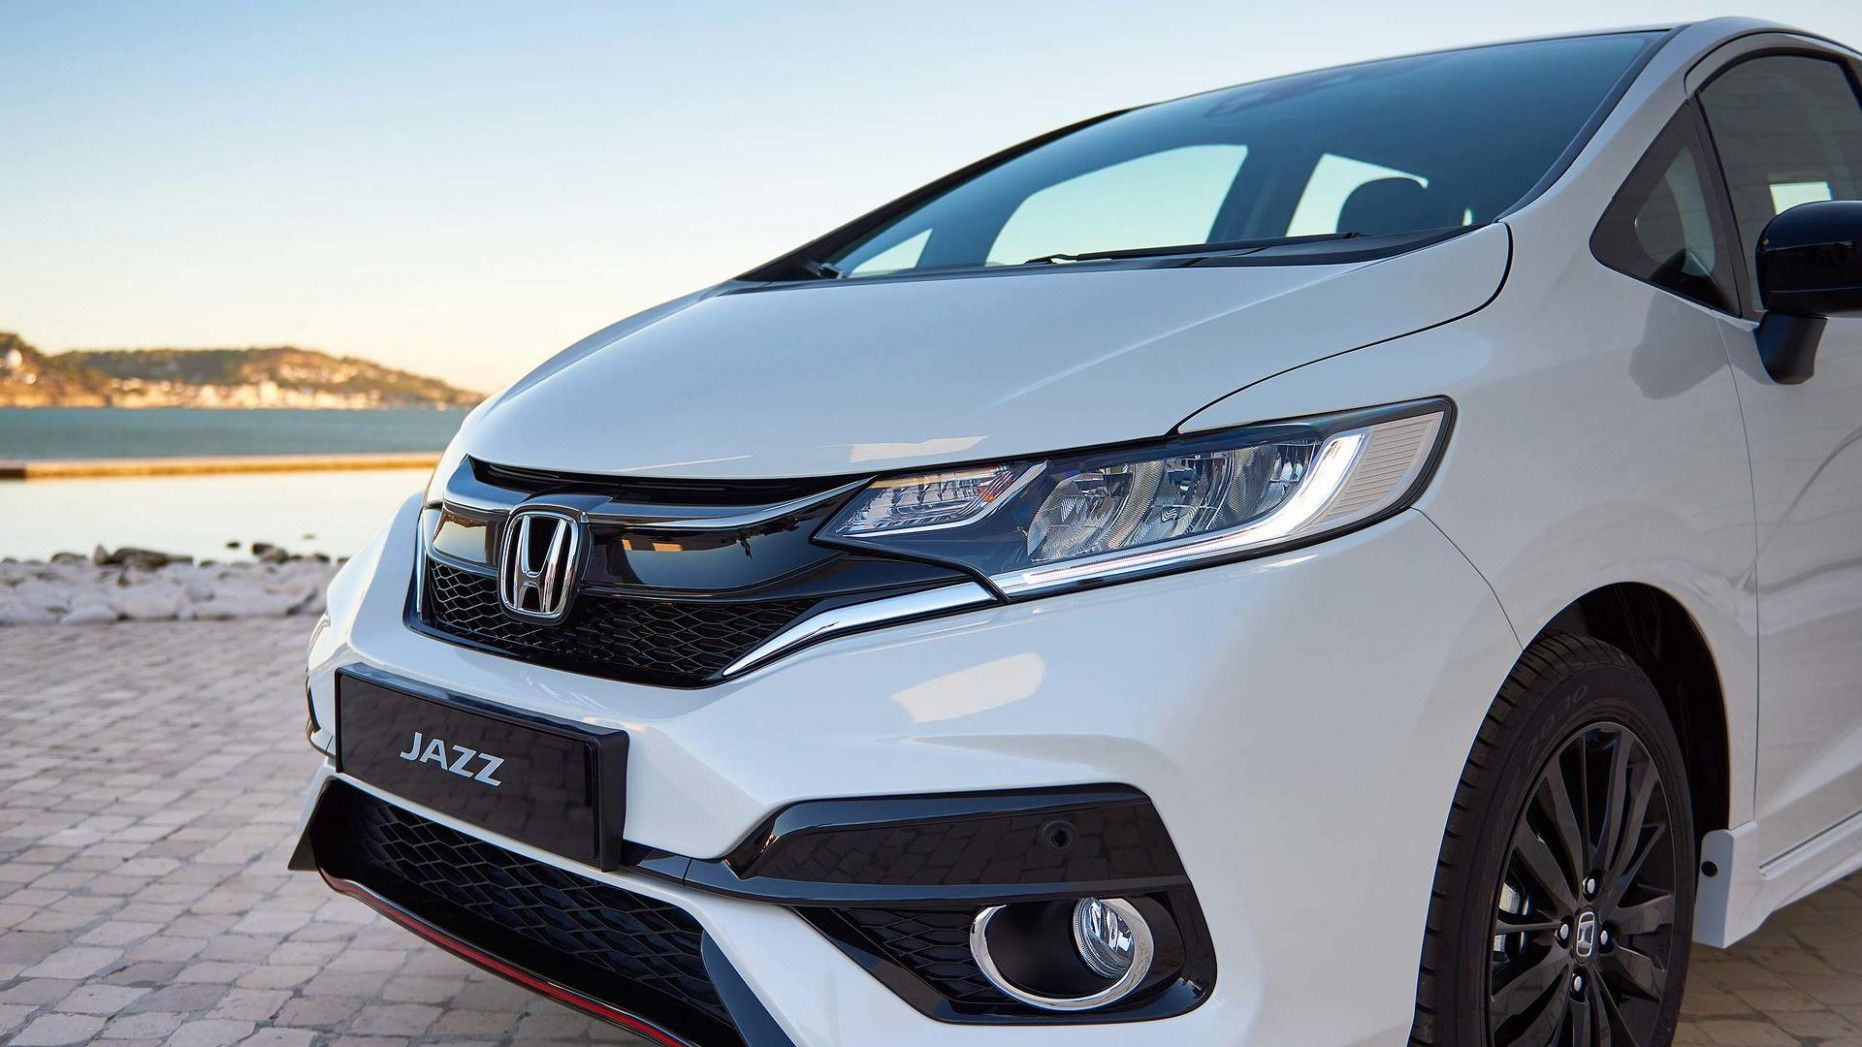 2020 Honda Jazz Sport Specs And Review Honda fit, Mobil